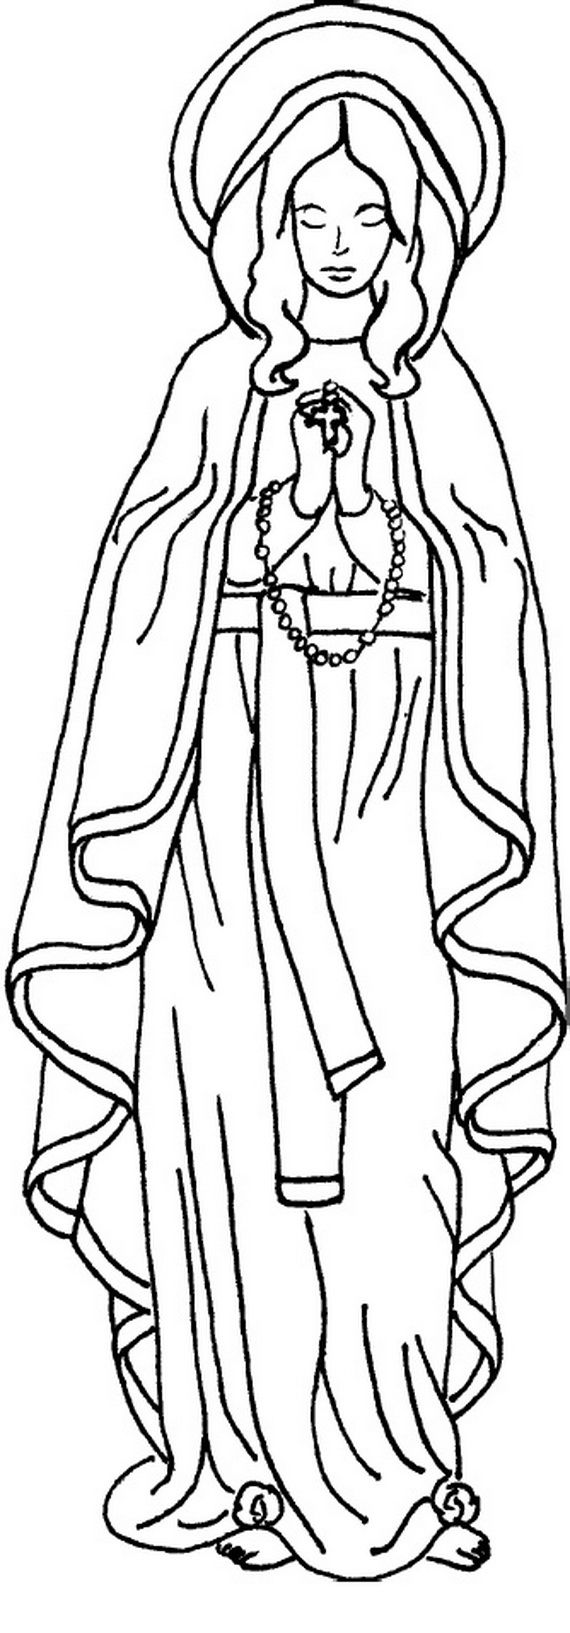 catholic kids coloring pages mary - photo#6